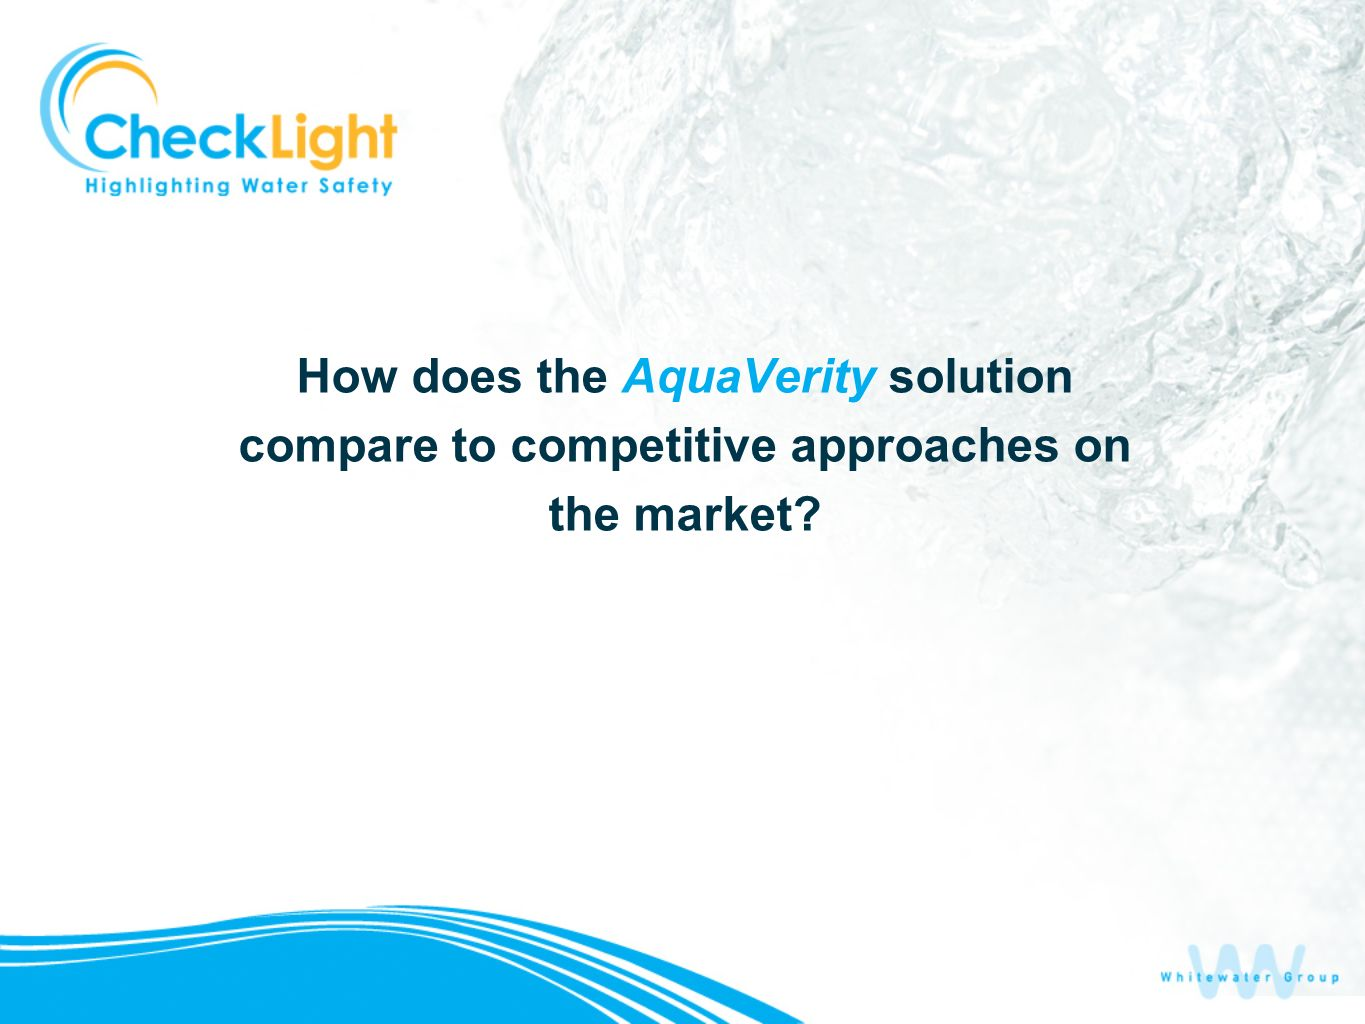 How does the AquaVerity solution compare to competitive approaches on the market?